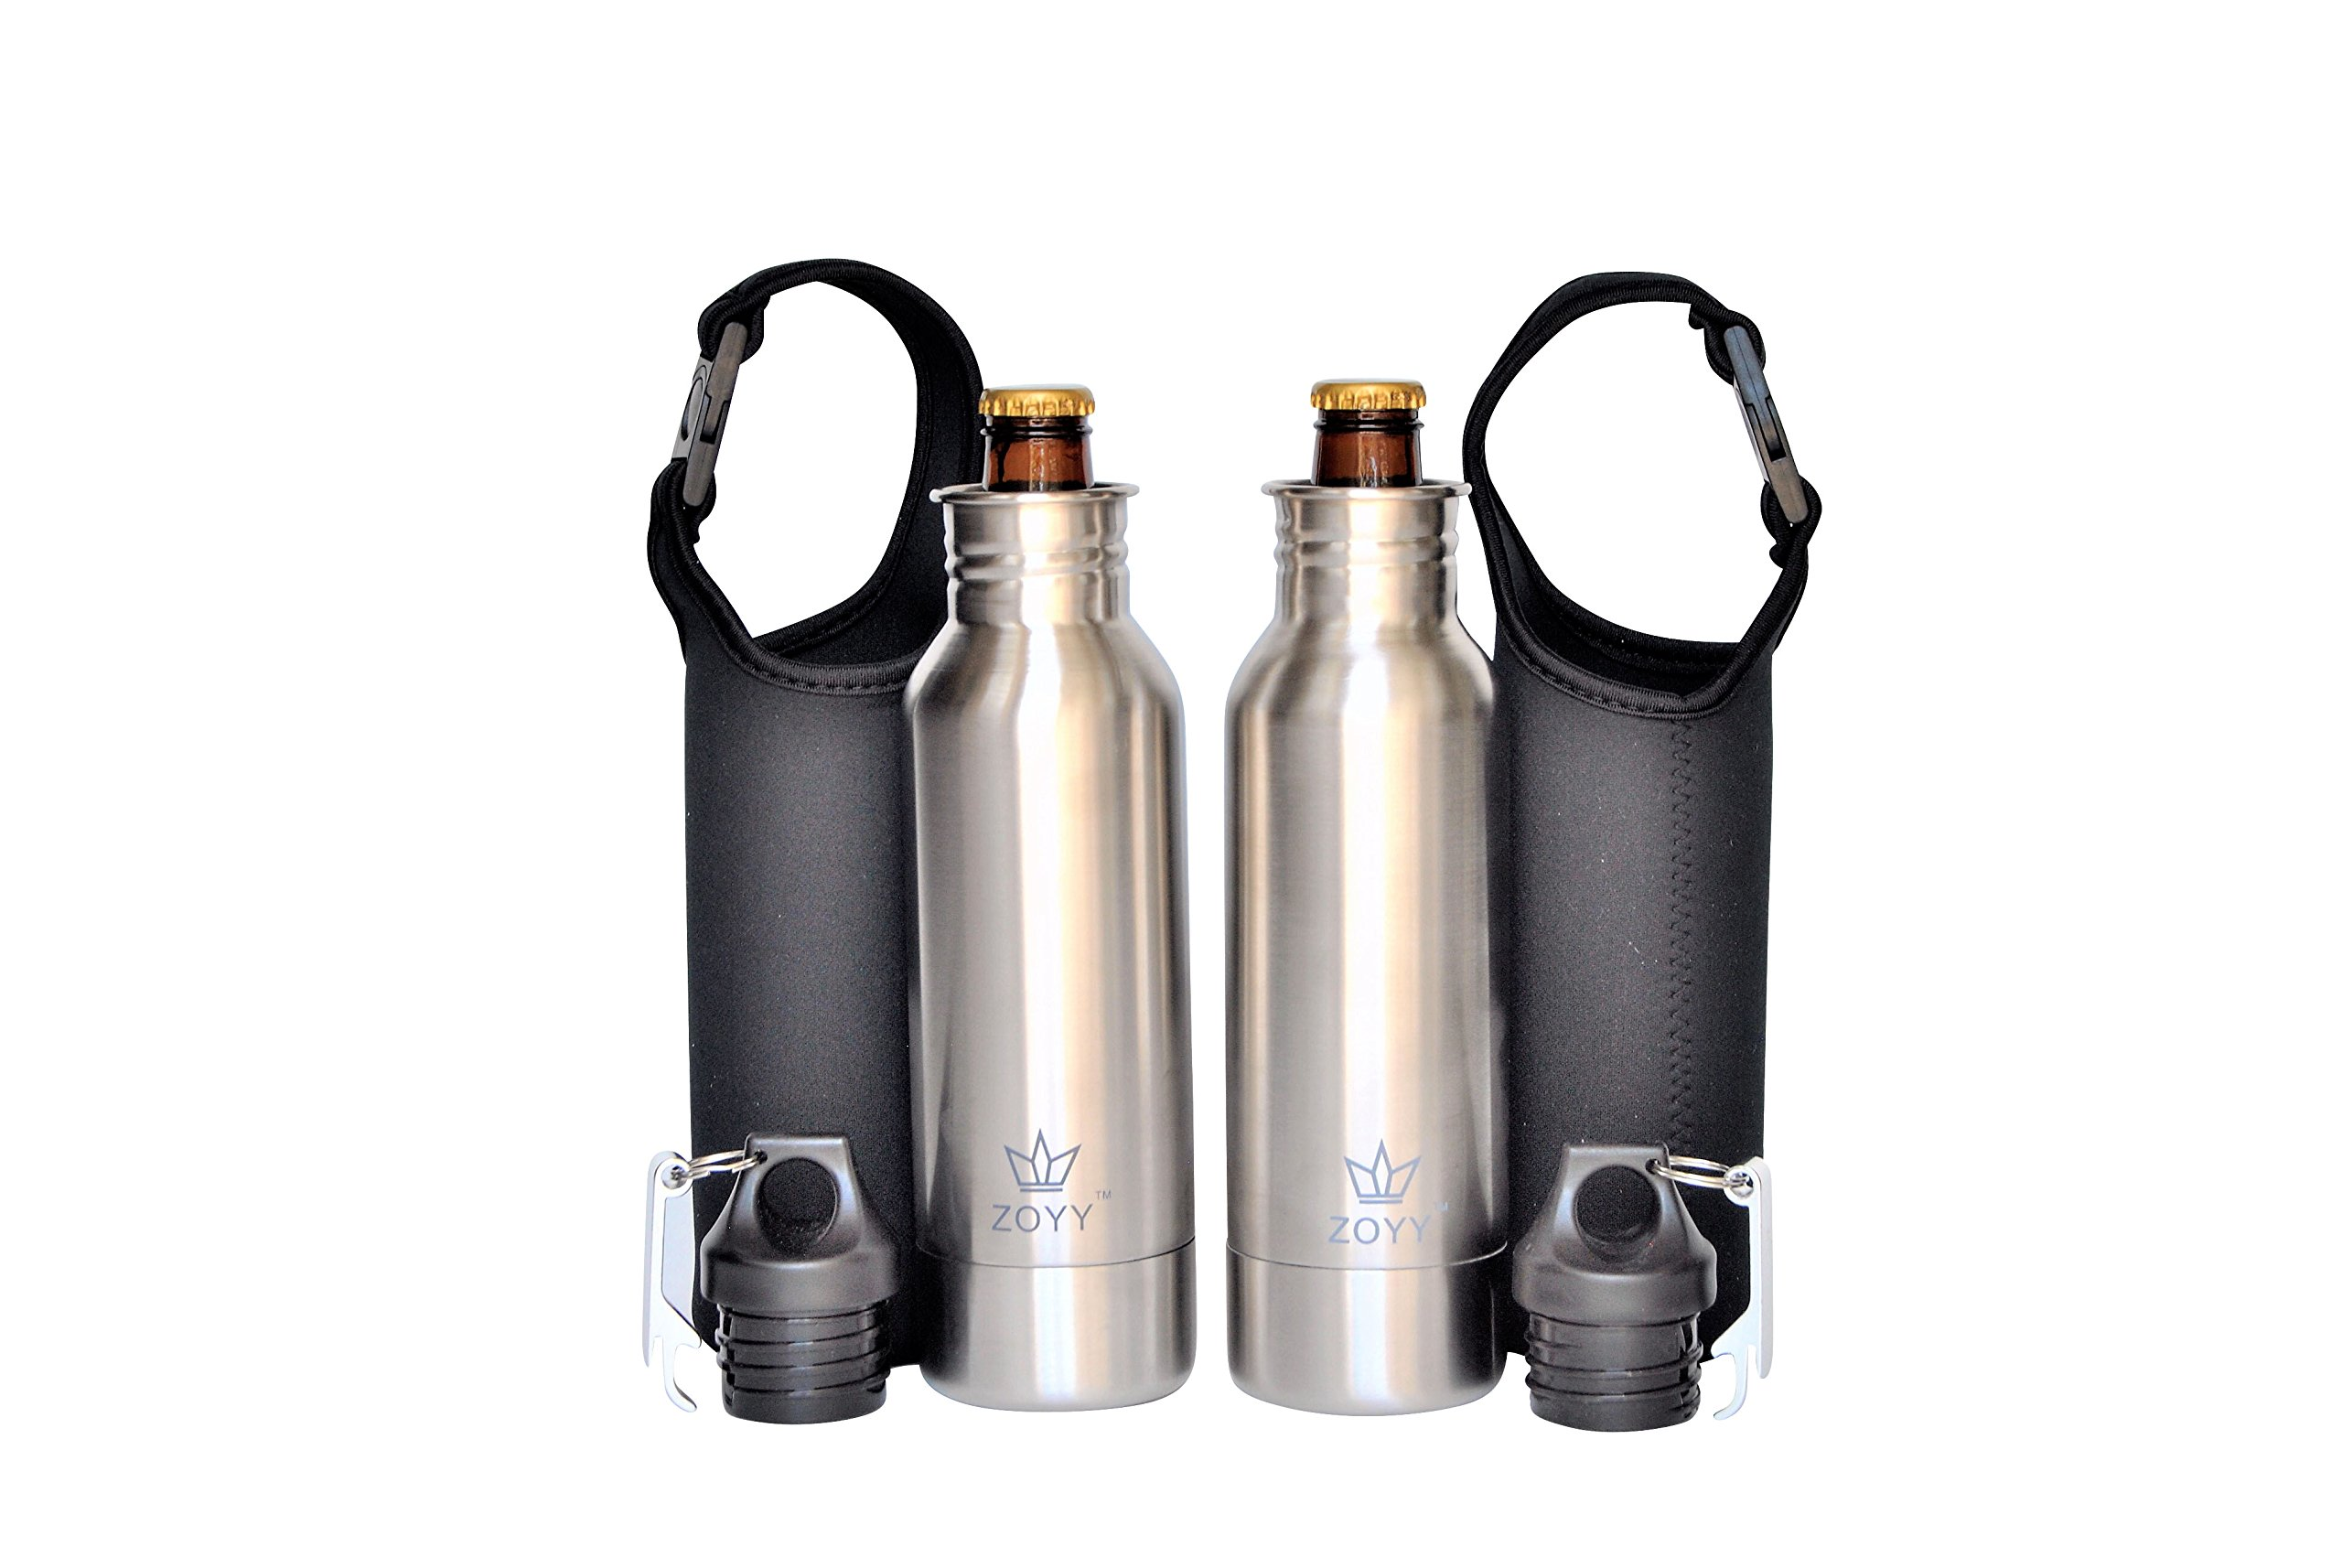 2x Stainless Steel Beer Bottle Holder Insulator With Opener and Carrying Case by Zoyy